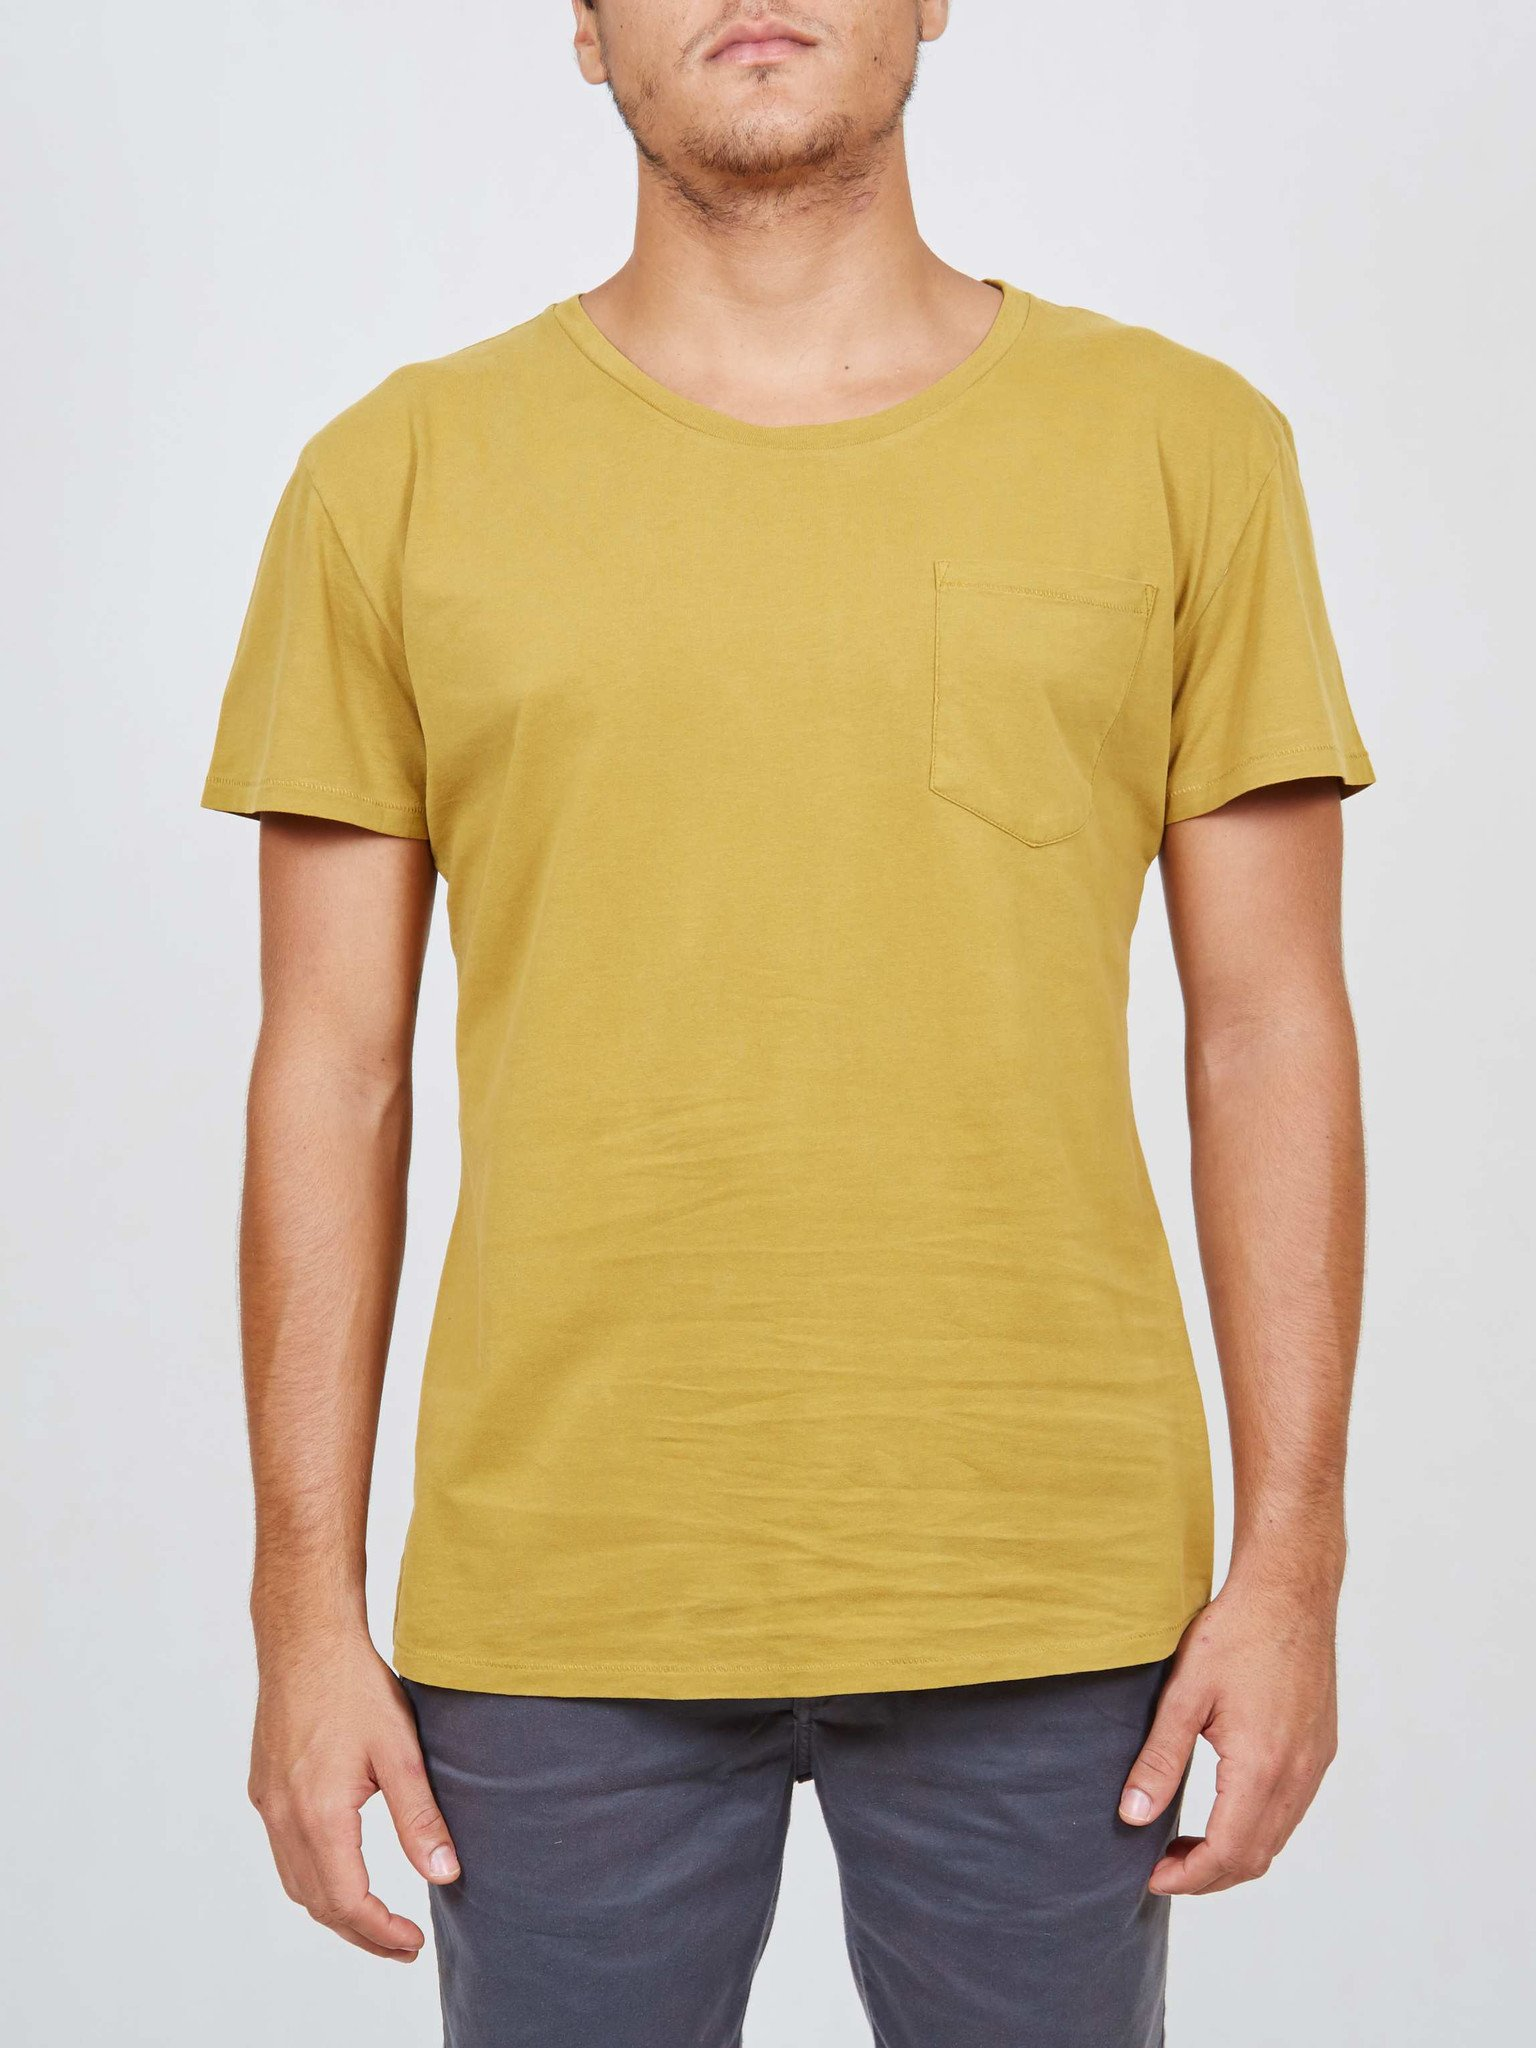 Foto do Camiseta Cotton Project Essential with Pocket Mostarda